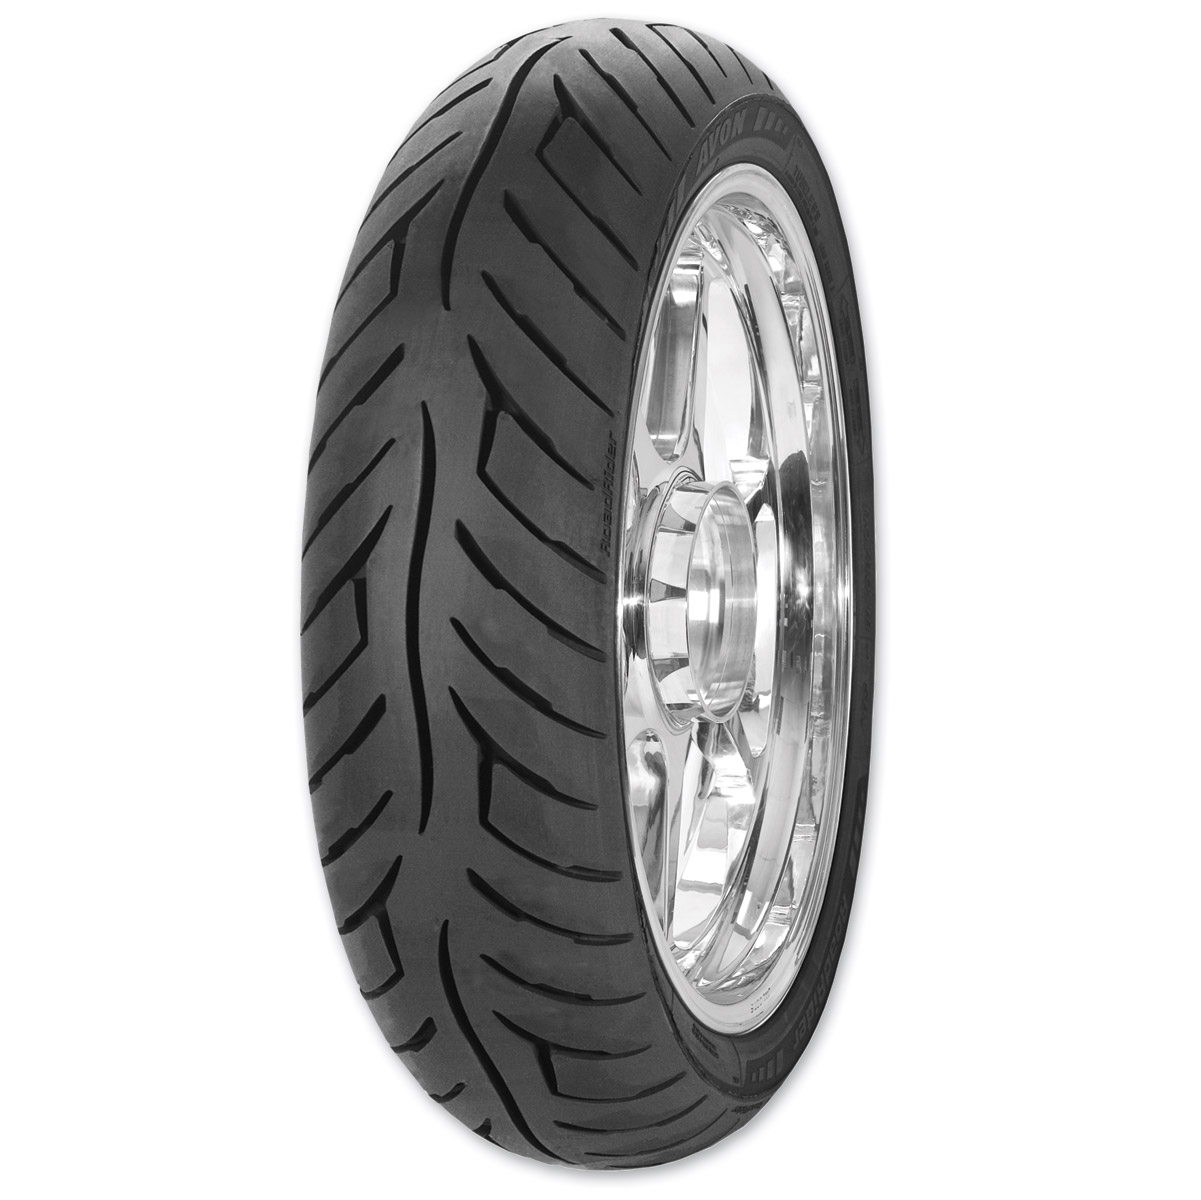 Avon AM26 Roadrider MT90-16 Rear Tire